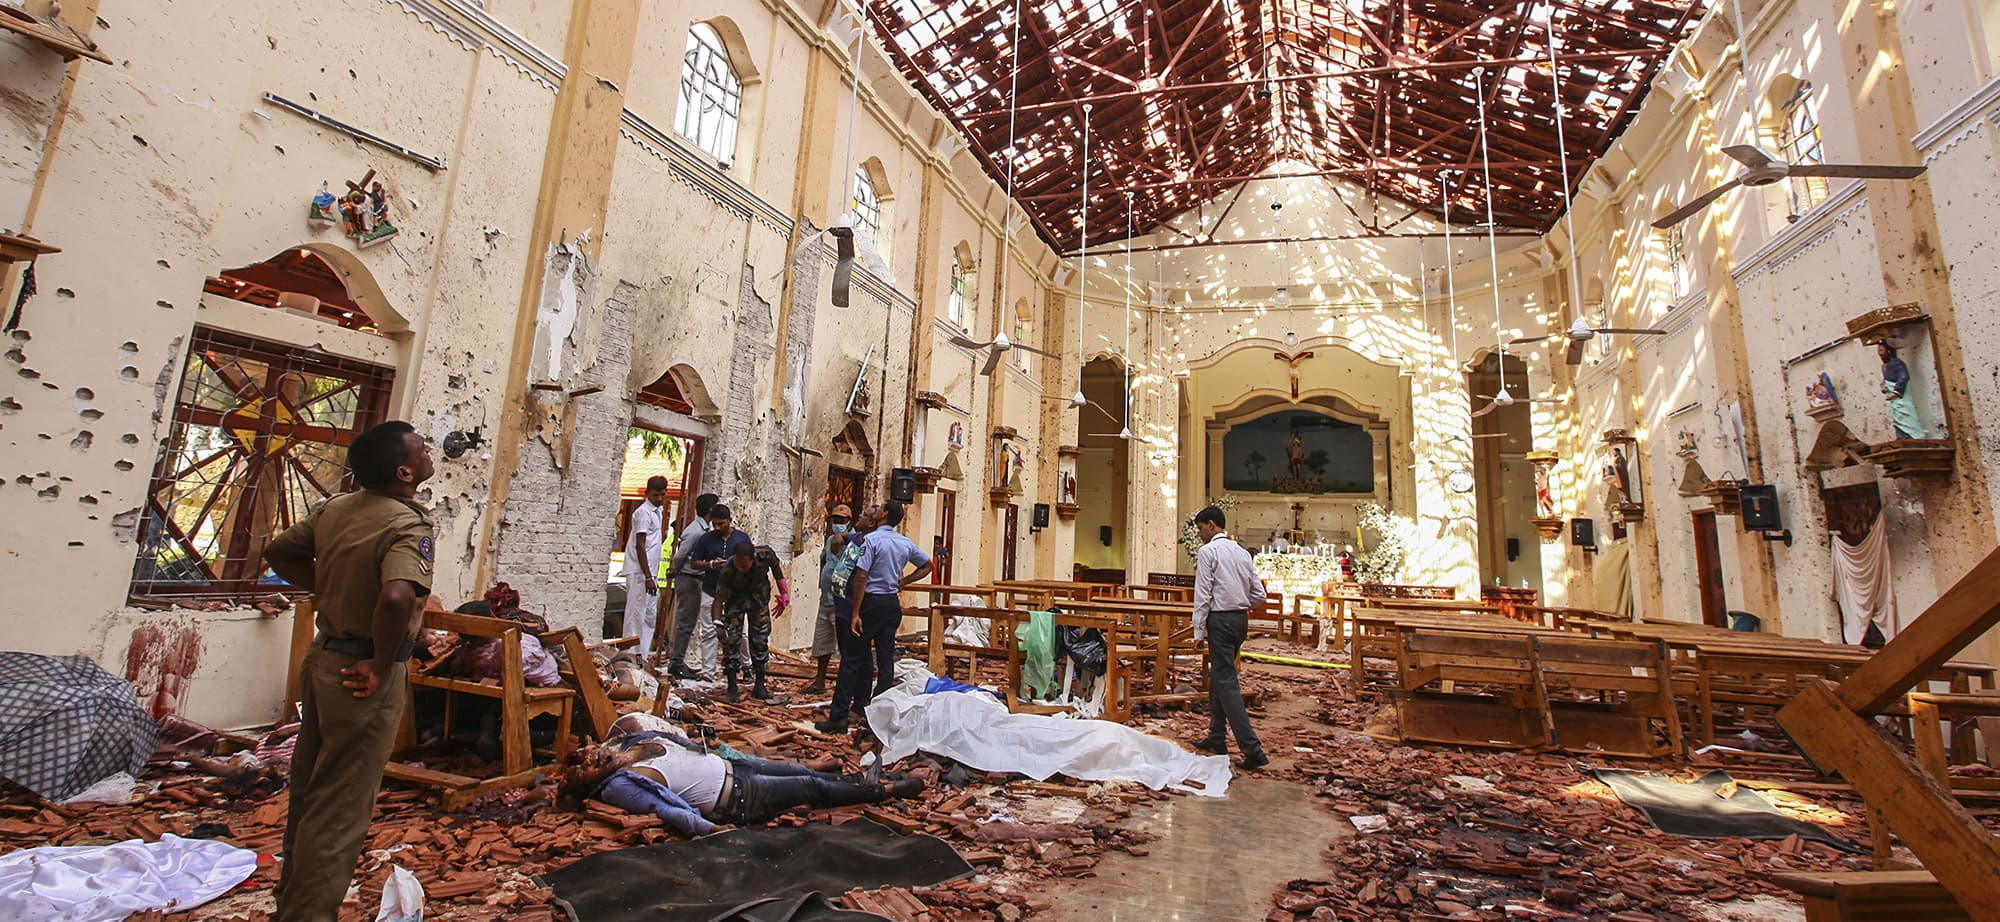 Dead bodies of victims lie inside St. Sebastian's Church damaged in blast in Negombo, north of Colombo, Sri Lanka, Sunday, April 21, 2019.  More than two hundred people were killed and hundreds more injured in eight blasts that rocked churches and hotels in and just outside Sri Lanka's capital on Easter Sunday. (AP Photo/Chamila Karunarathne) — Copyright 2019 The Associated Press. All rights reserved.